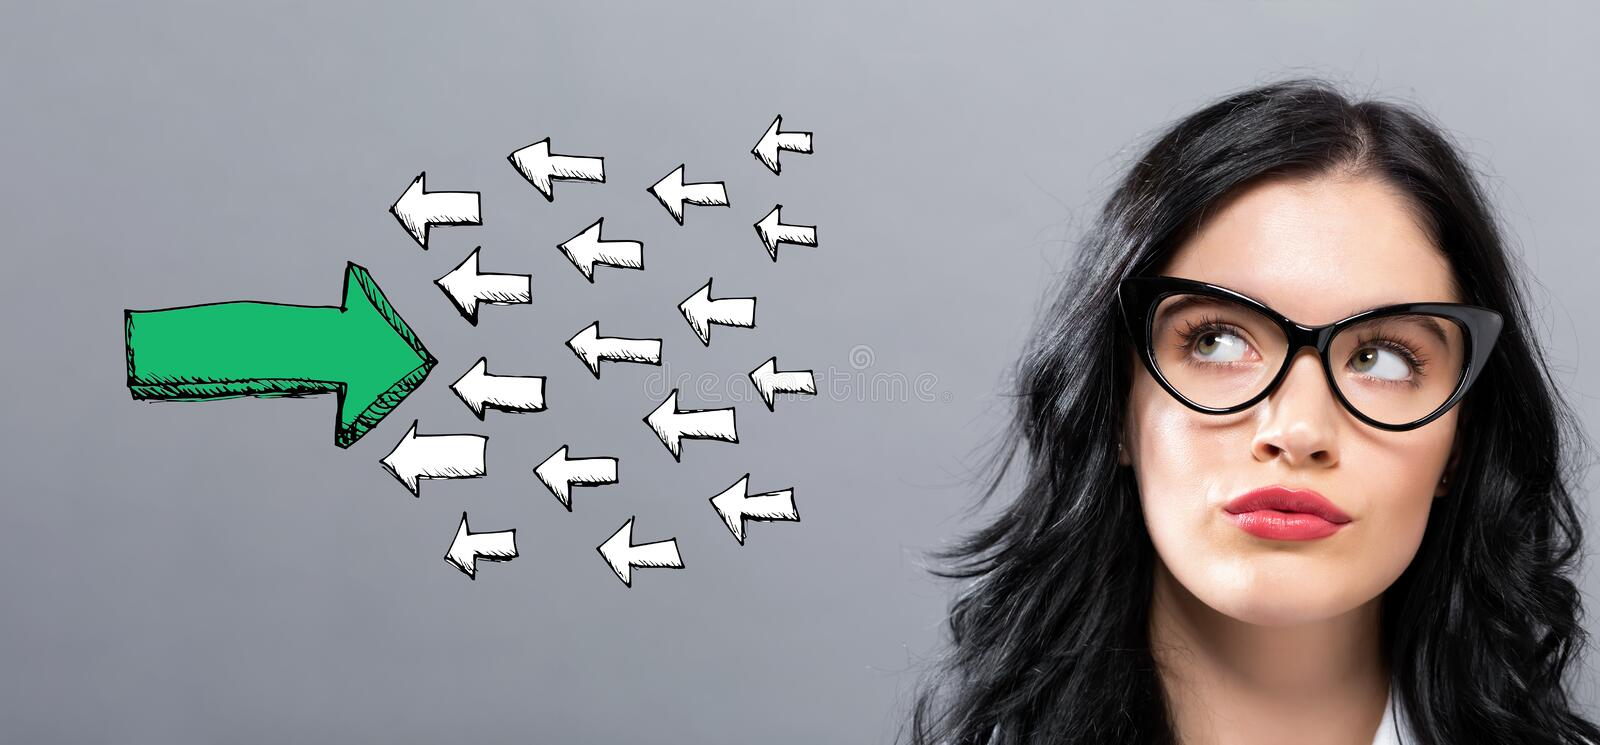 Arrow facing in a opposite direction with young businesswoman. In a thoughtful face royalty free stock image